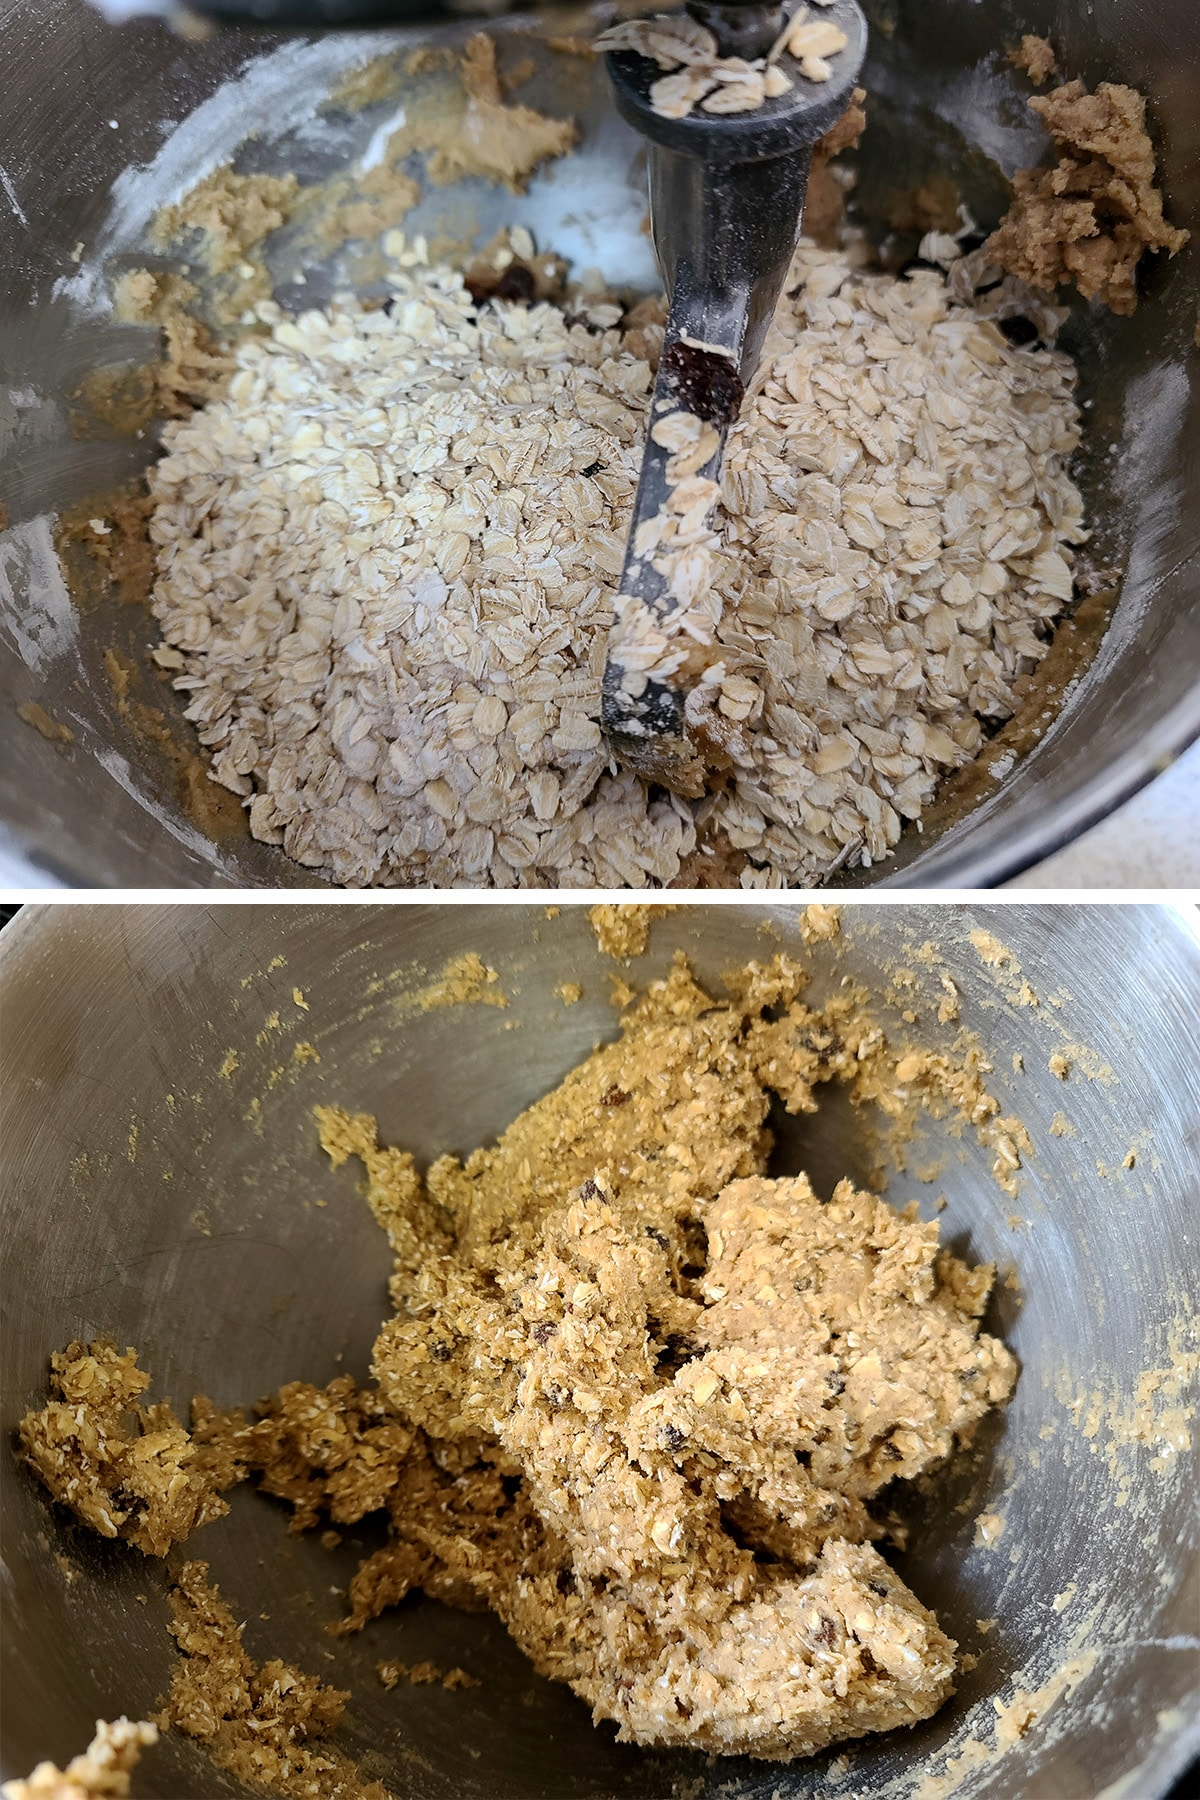 Oats and raisins added to the mixing bowl, and mixed into the cookie batter.